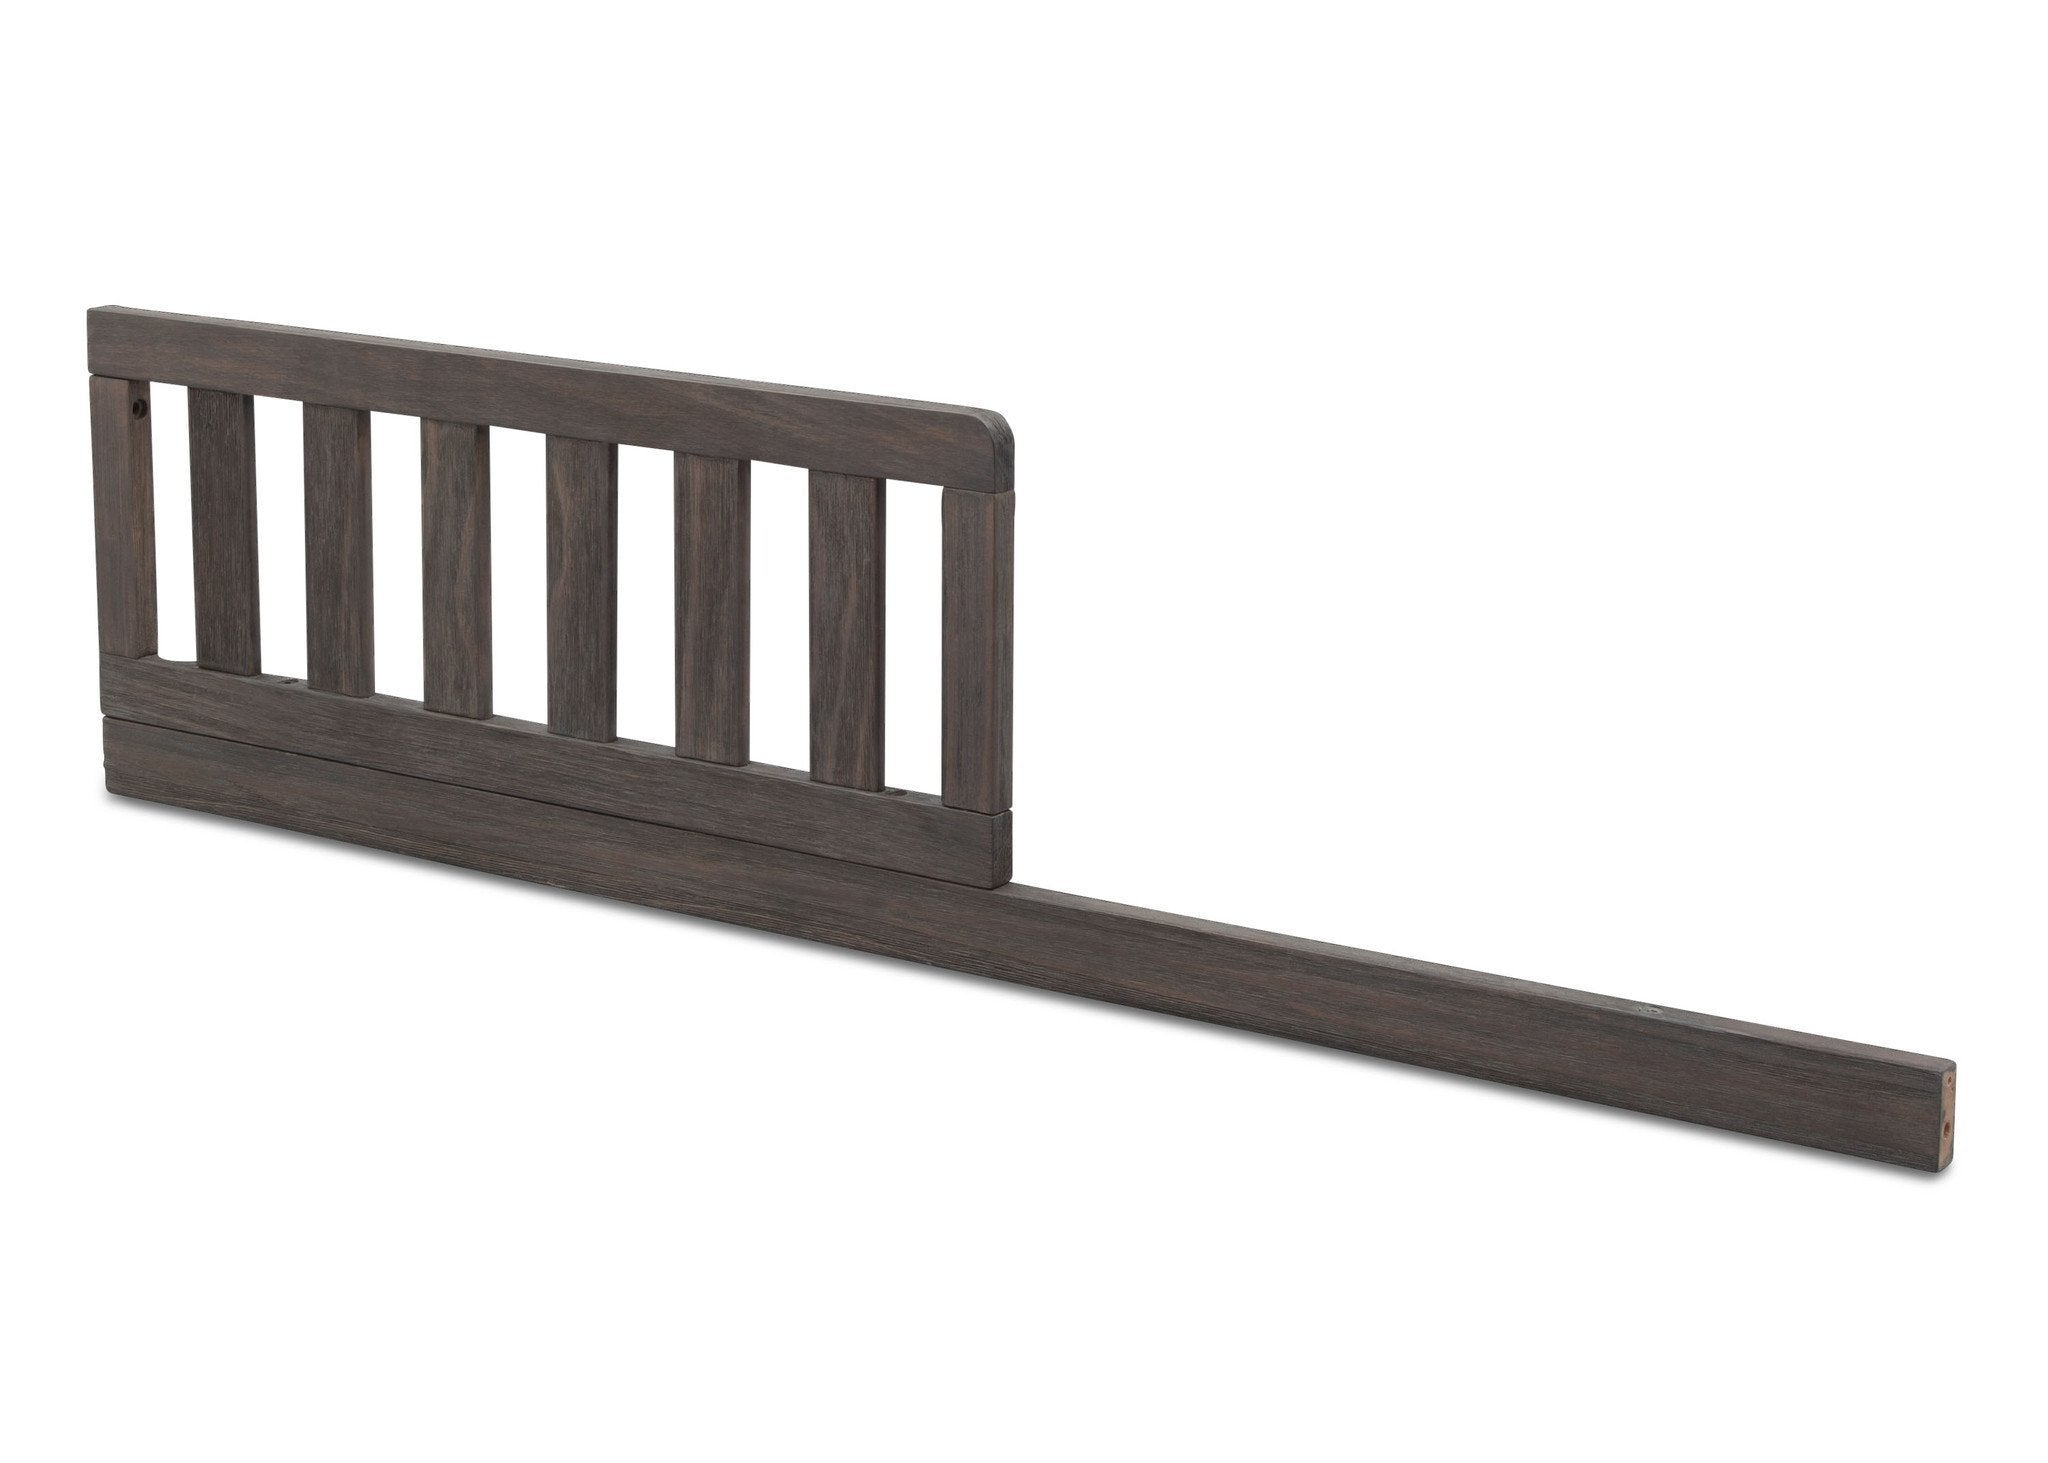 Serta Toddler Rustic Grey (084) Guardrail/Daybed Rail Kit (700726) Side View a2a